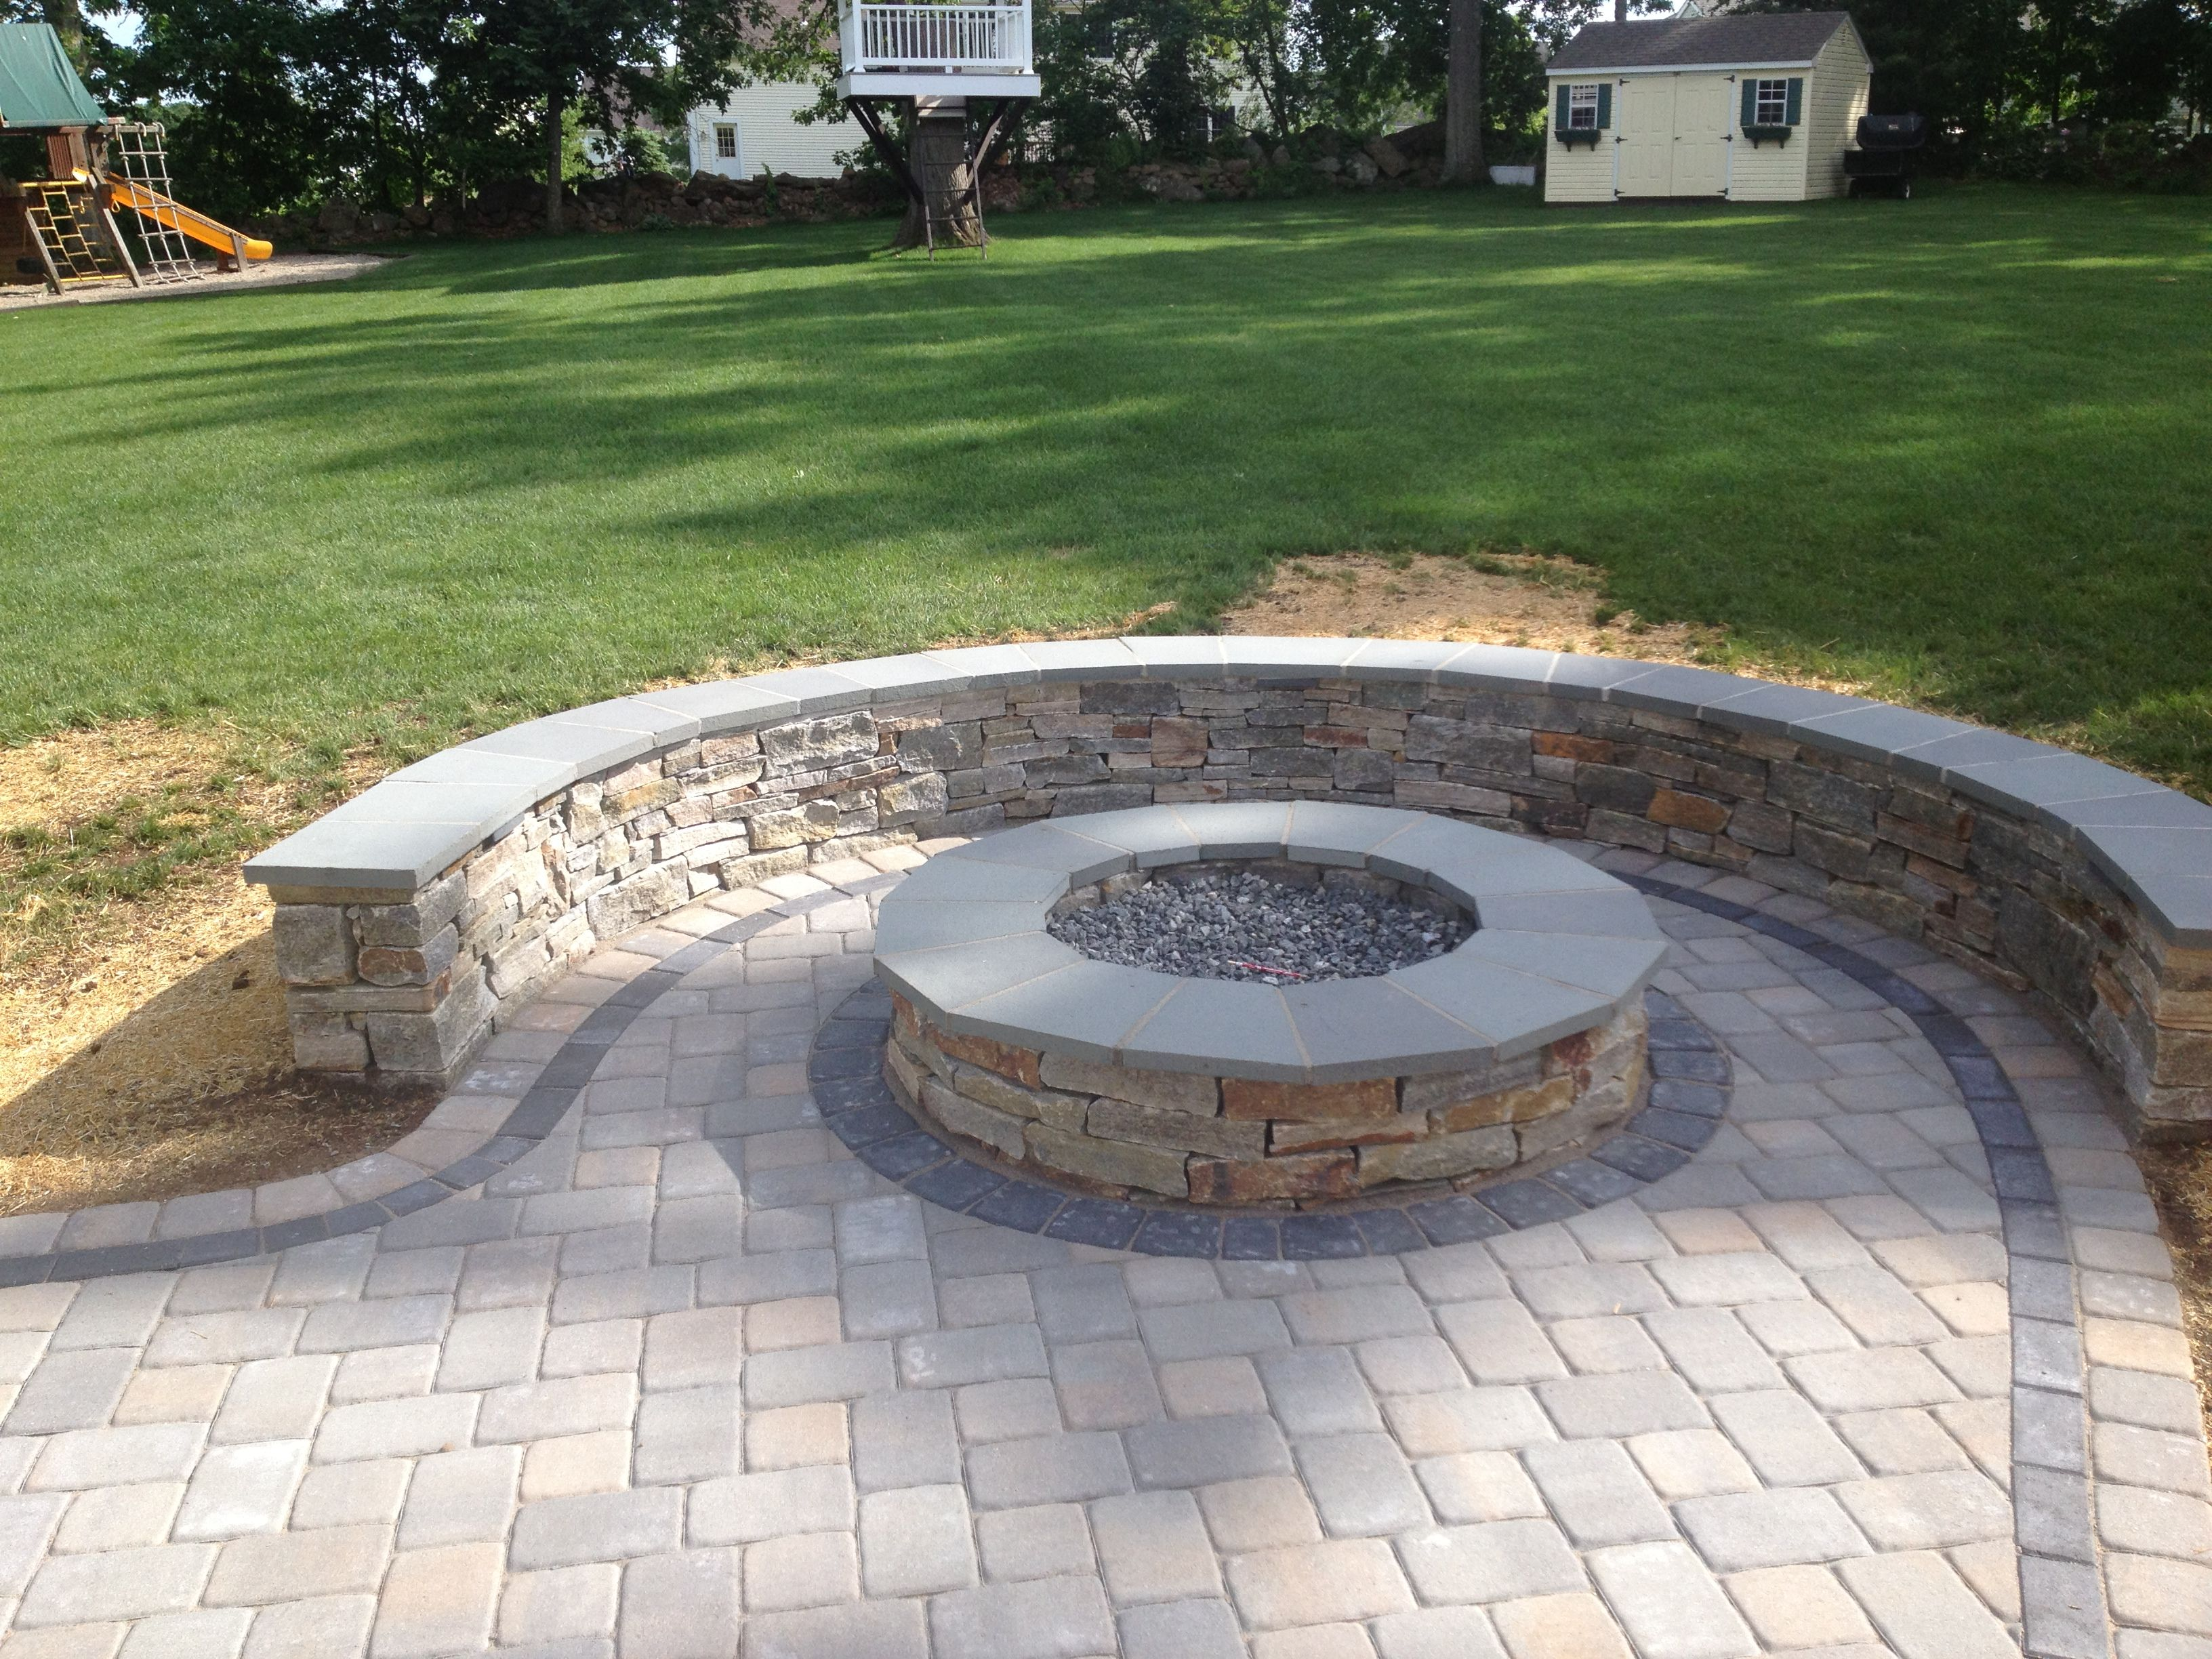 Diy Brick Fire Pit Under 50 From 12x12 Gray Cement Pavers And